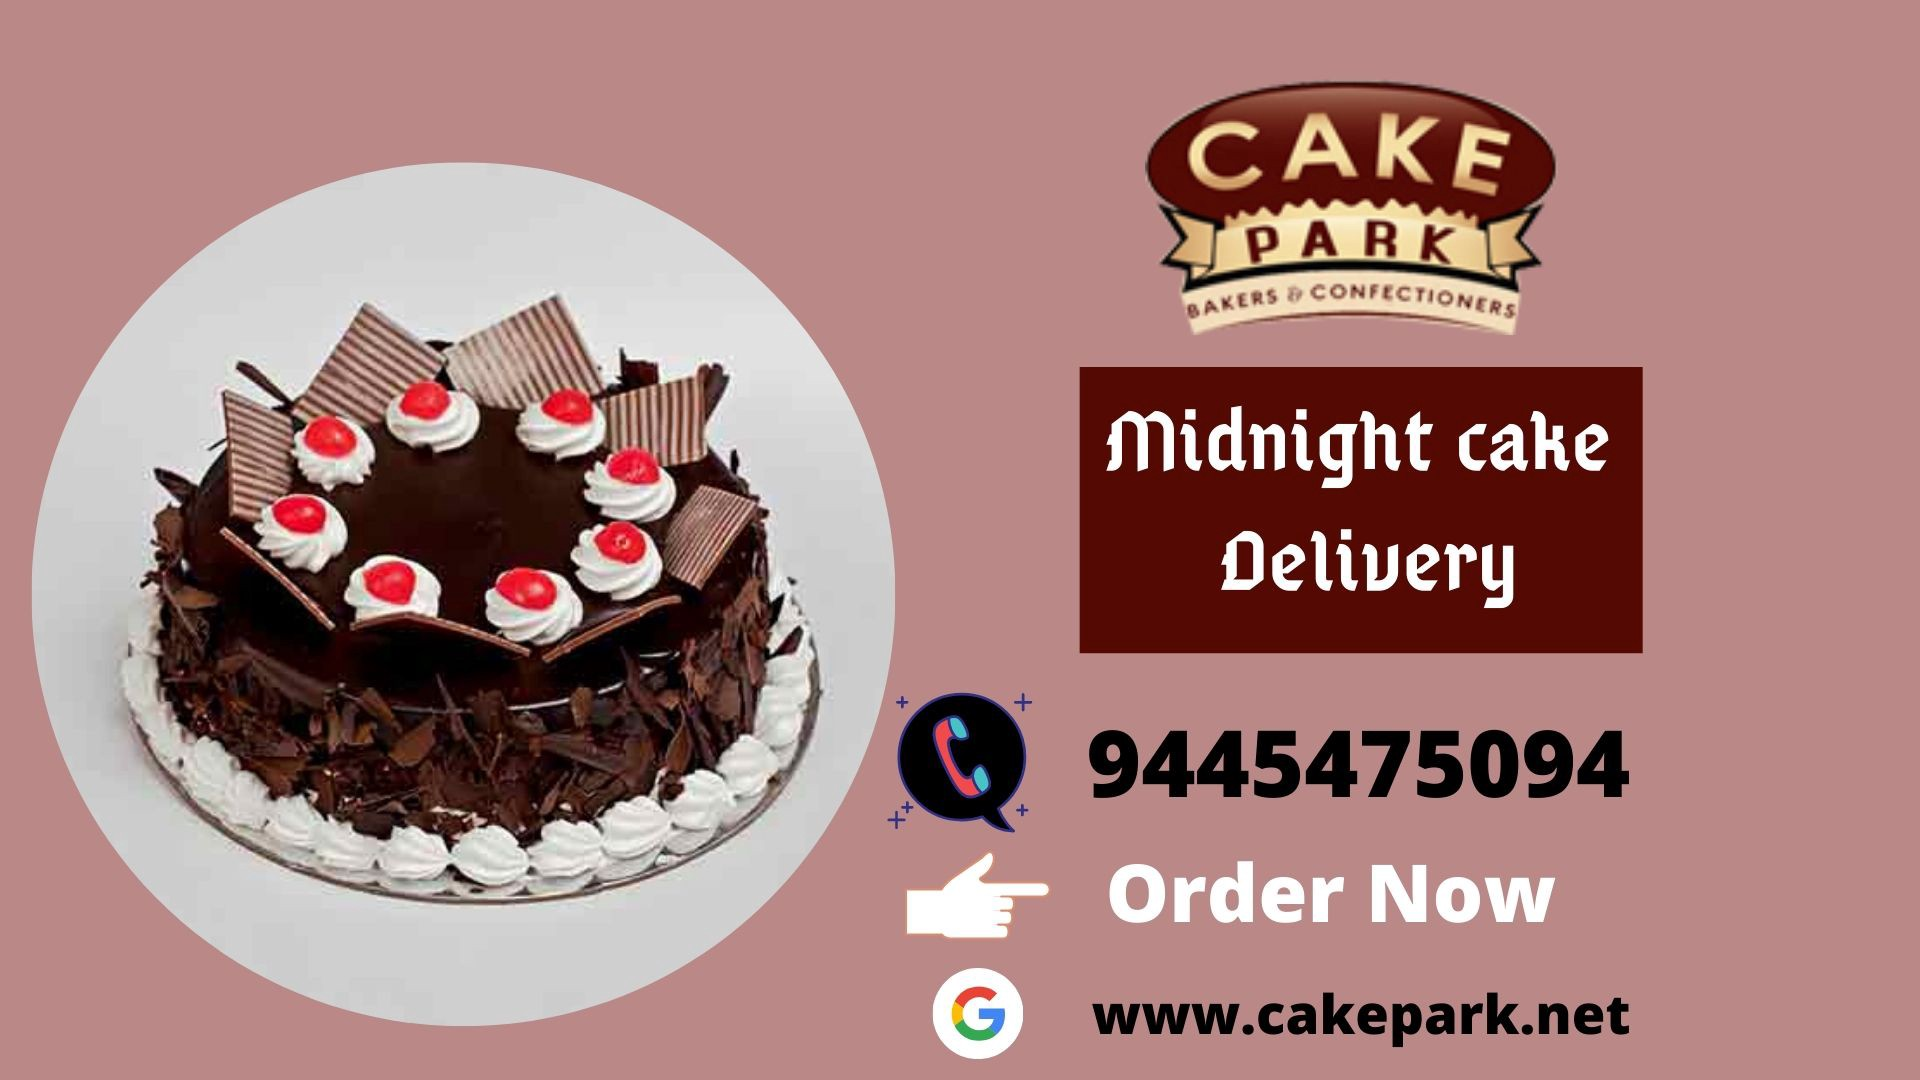 Midnight Cake Delivery Shops In Chennai At Low Cost By Cake Park Medium